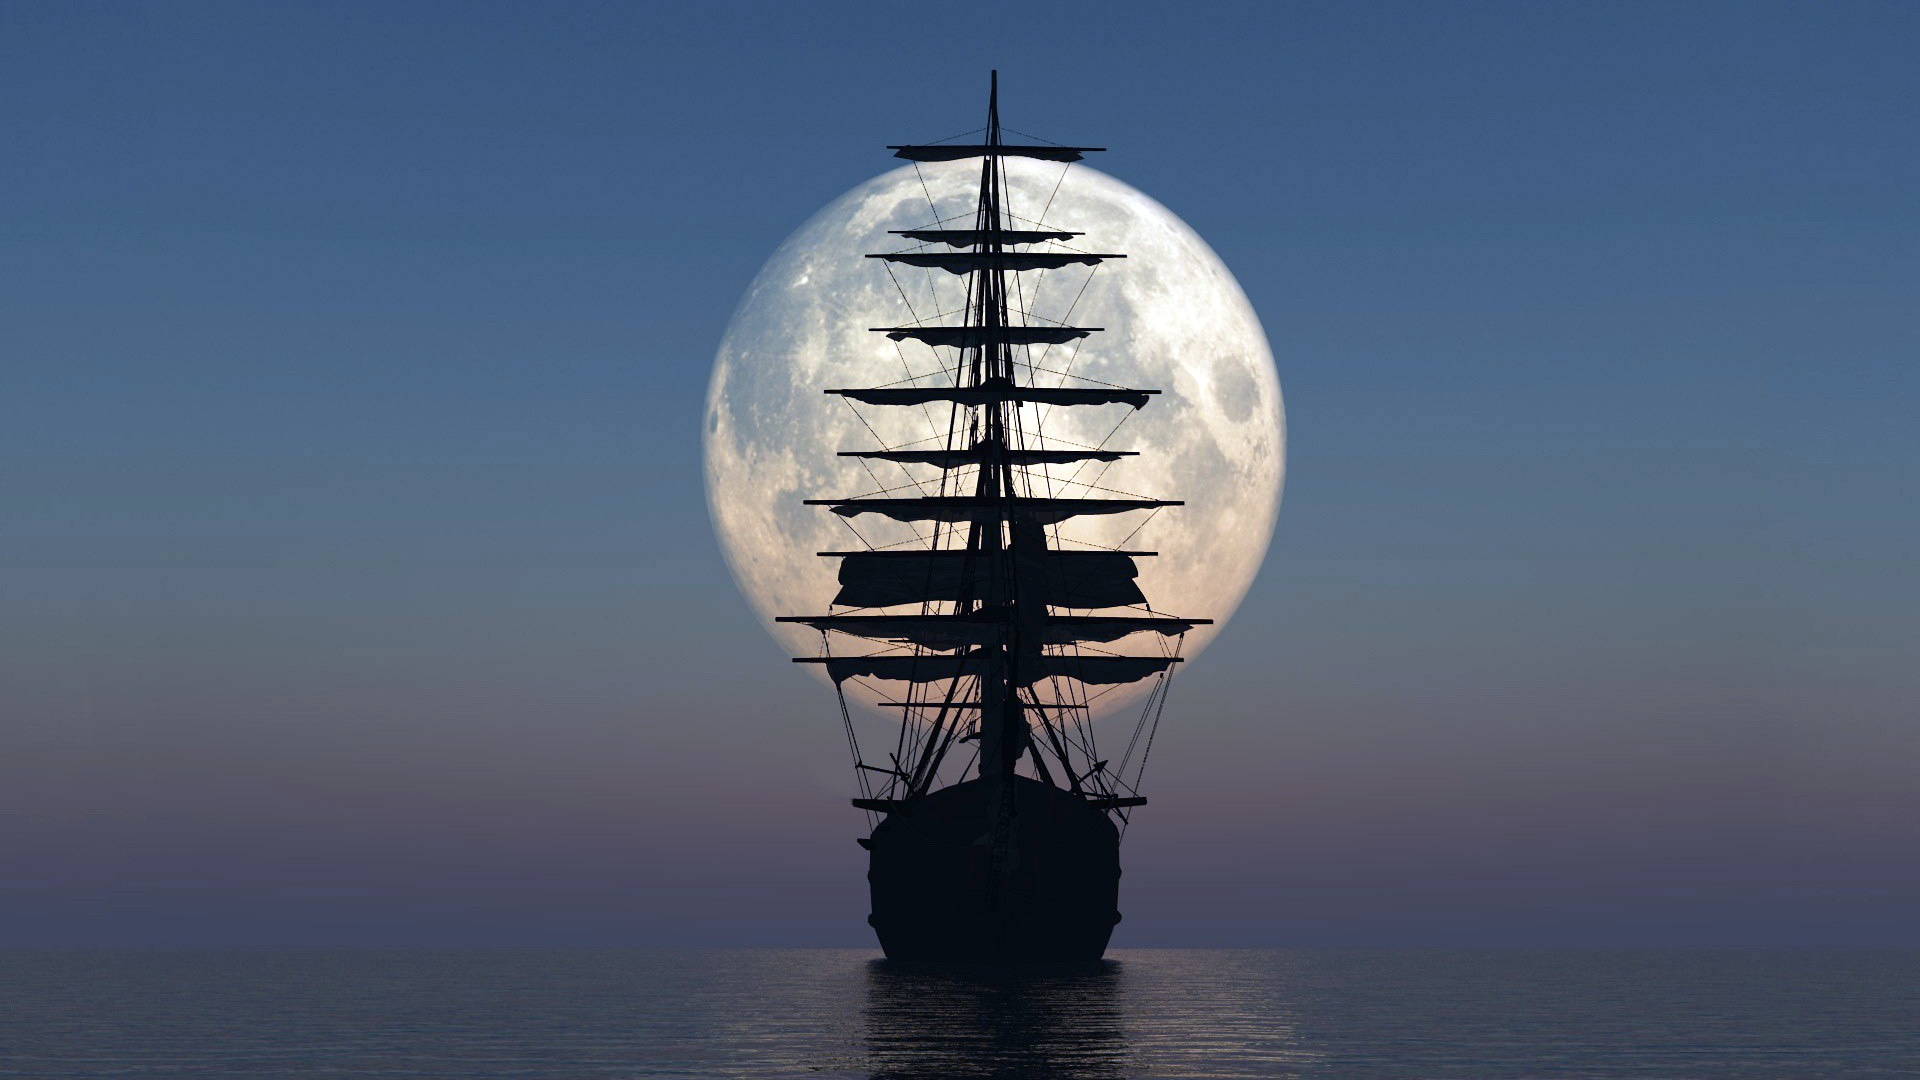 1920x1080-Sailboat-moon-wallpaper-wp360867